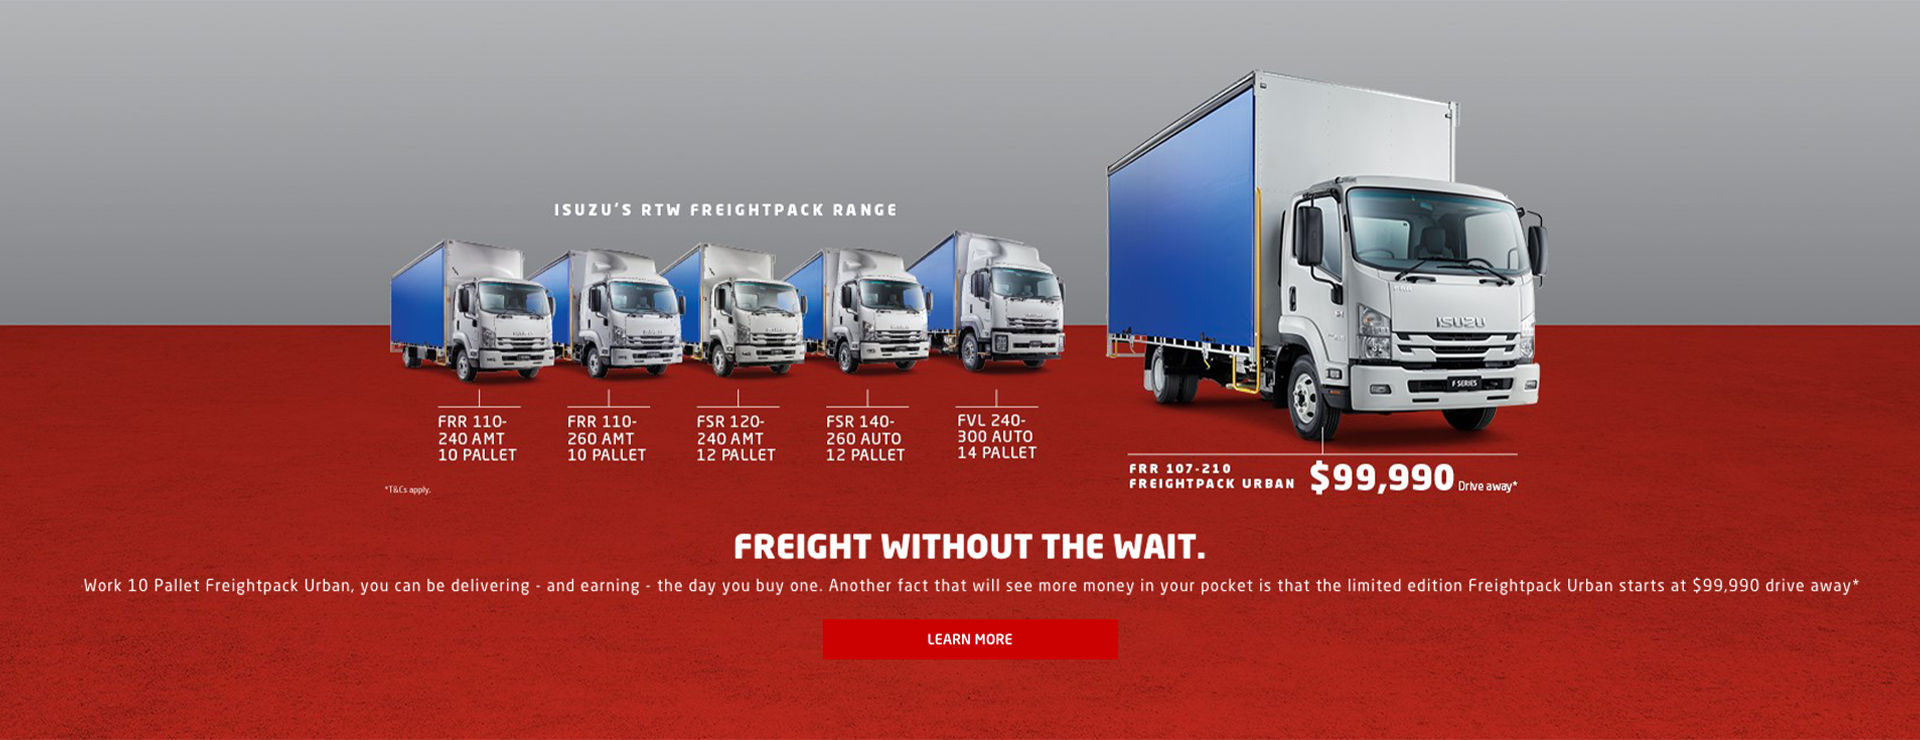 FREIGHT WITHOUT THE WAIT. With Isuzu's Ready-to-Work 10 Pallet Freightpack Urban, you can be delivering - and earning - the day you buy one. Another fact that will see more money in your pocket is that the limited edition Freightpack Urban starts at $99,9